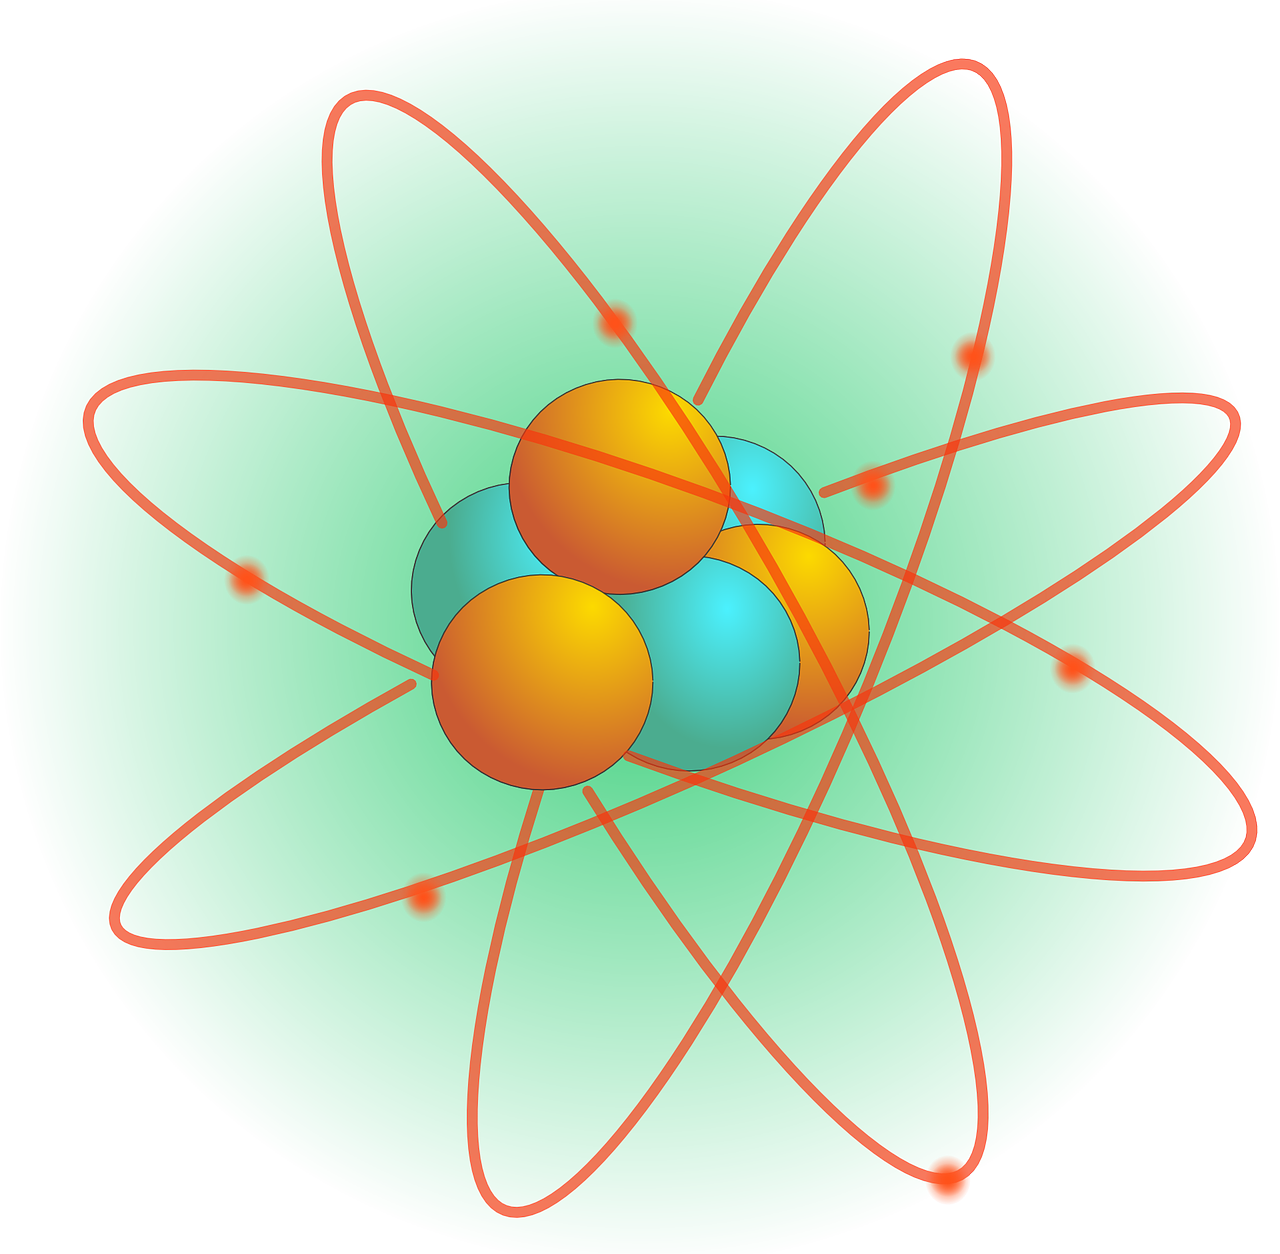 Atomic nucleus clipart #10